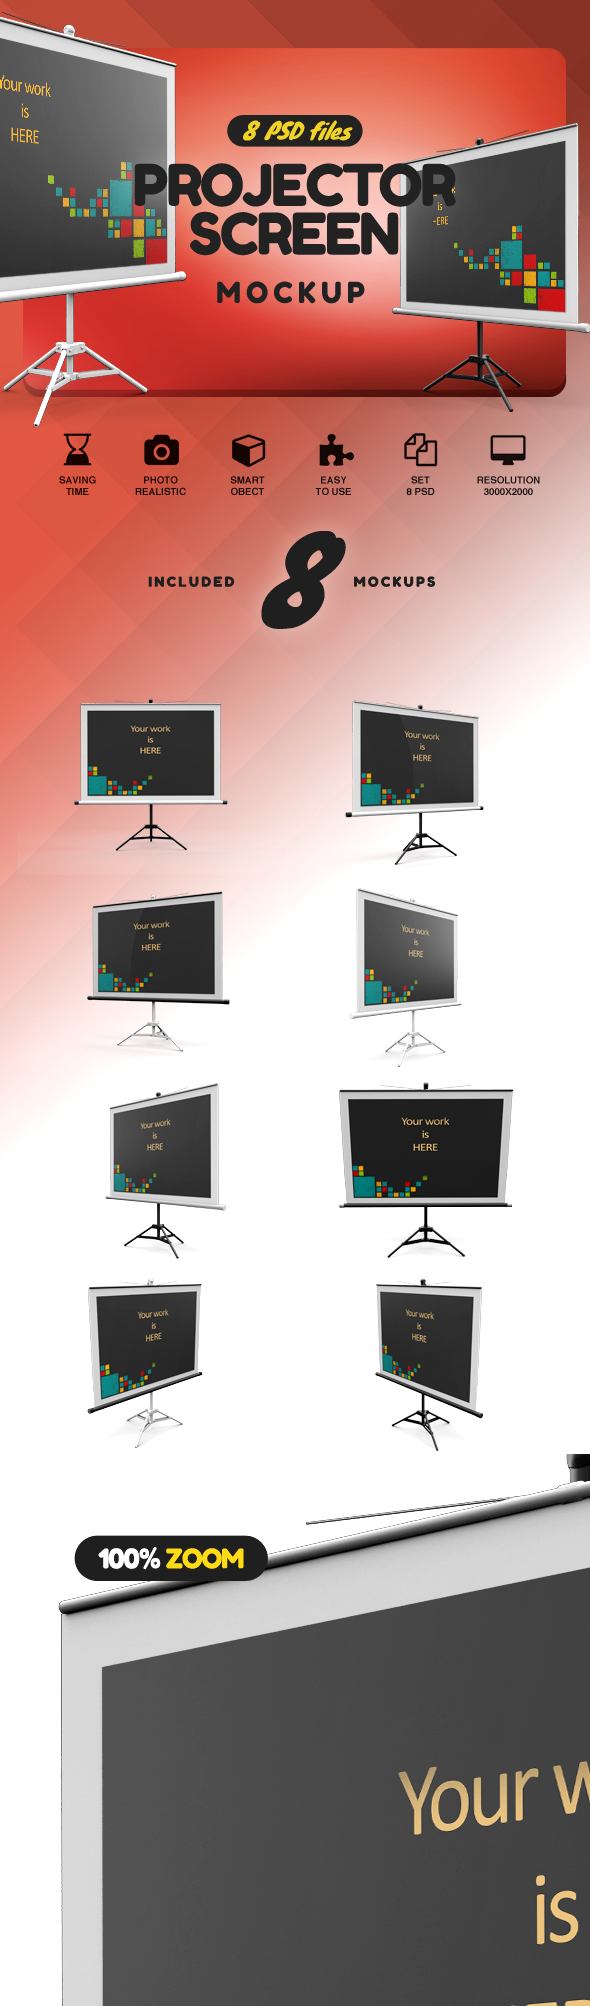 Projector Screen MockUp example image 2